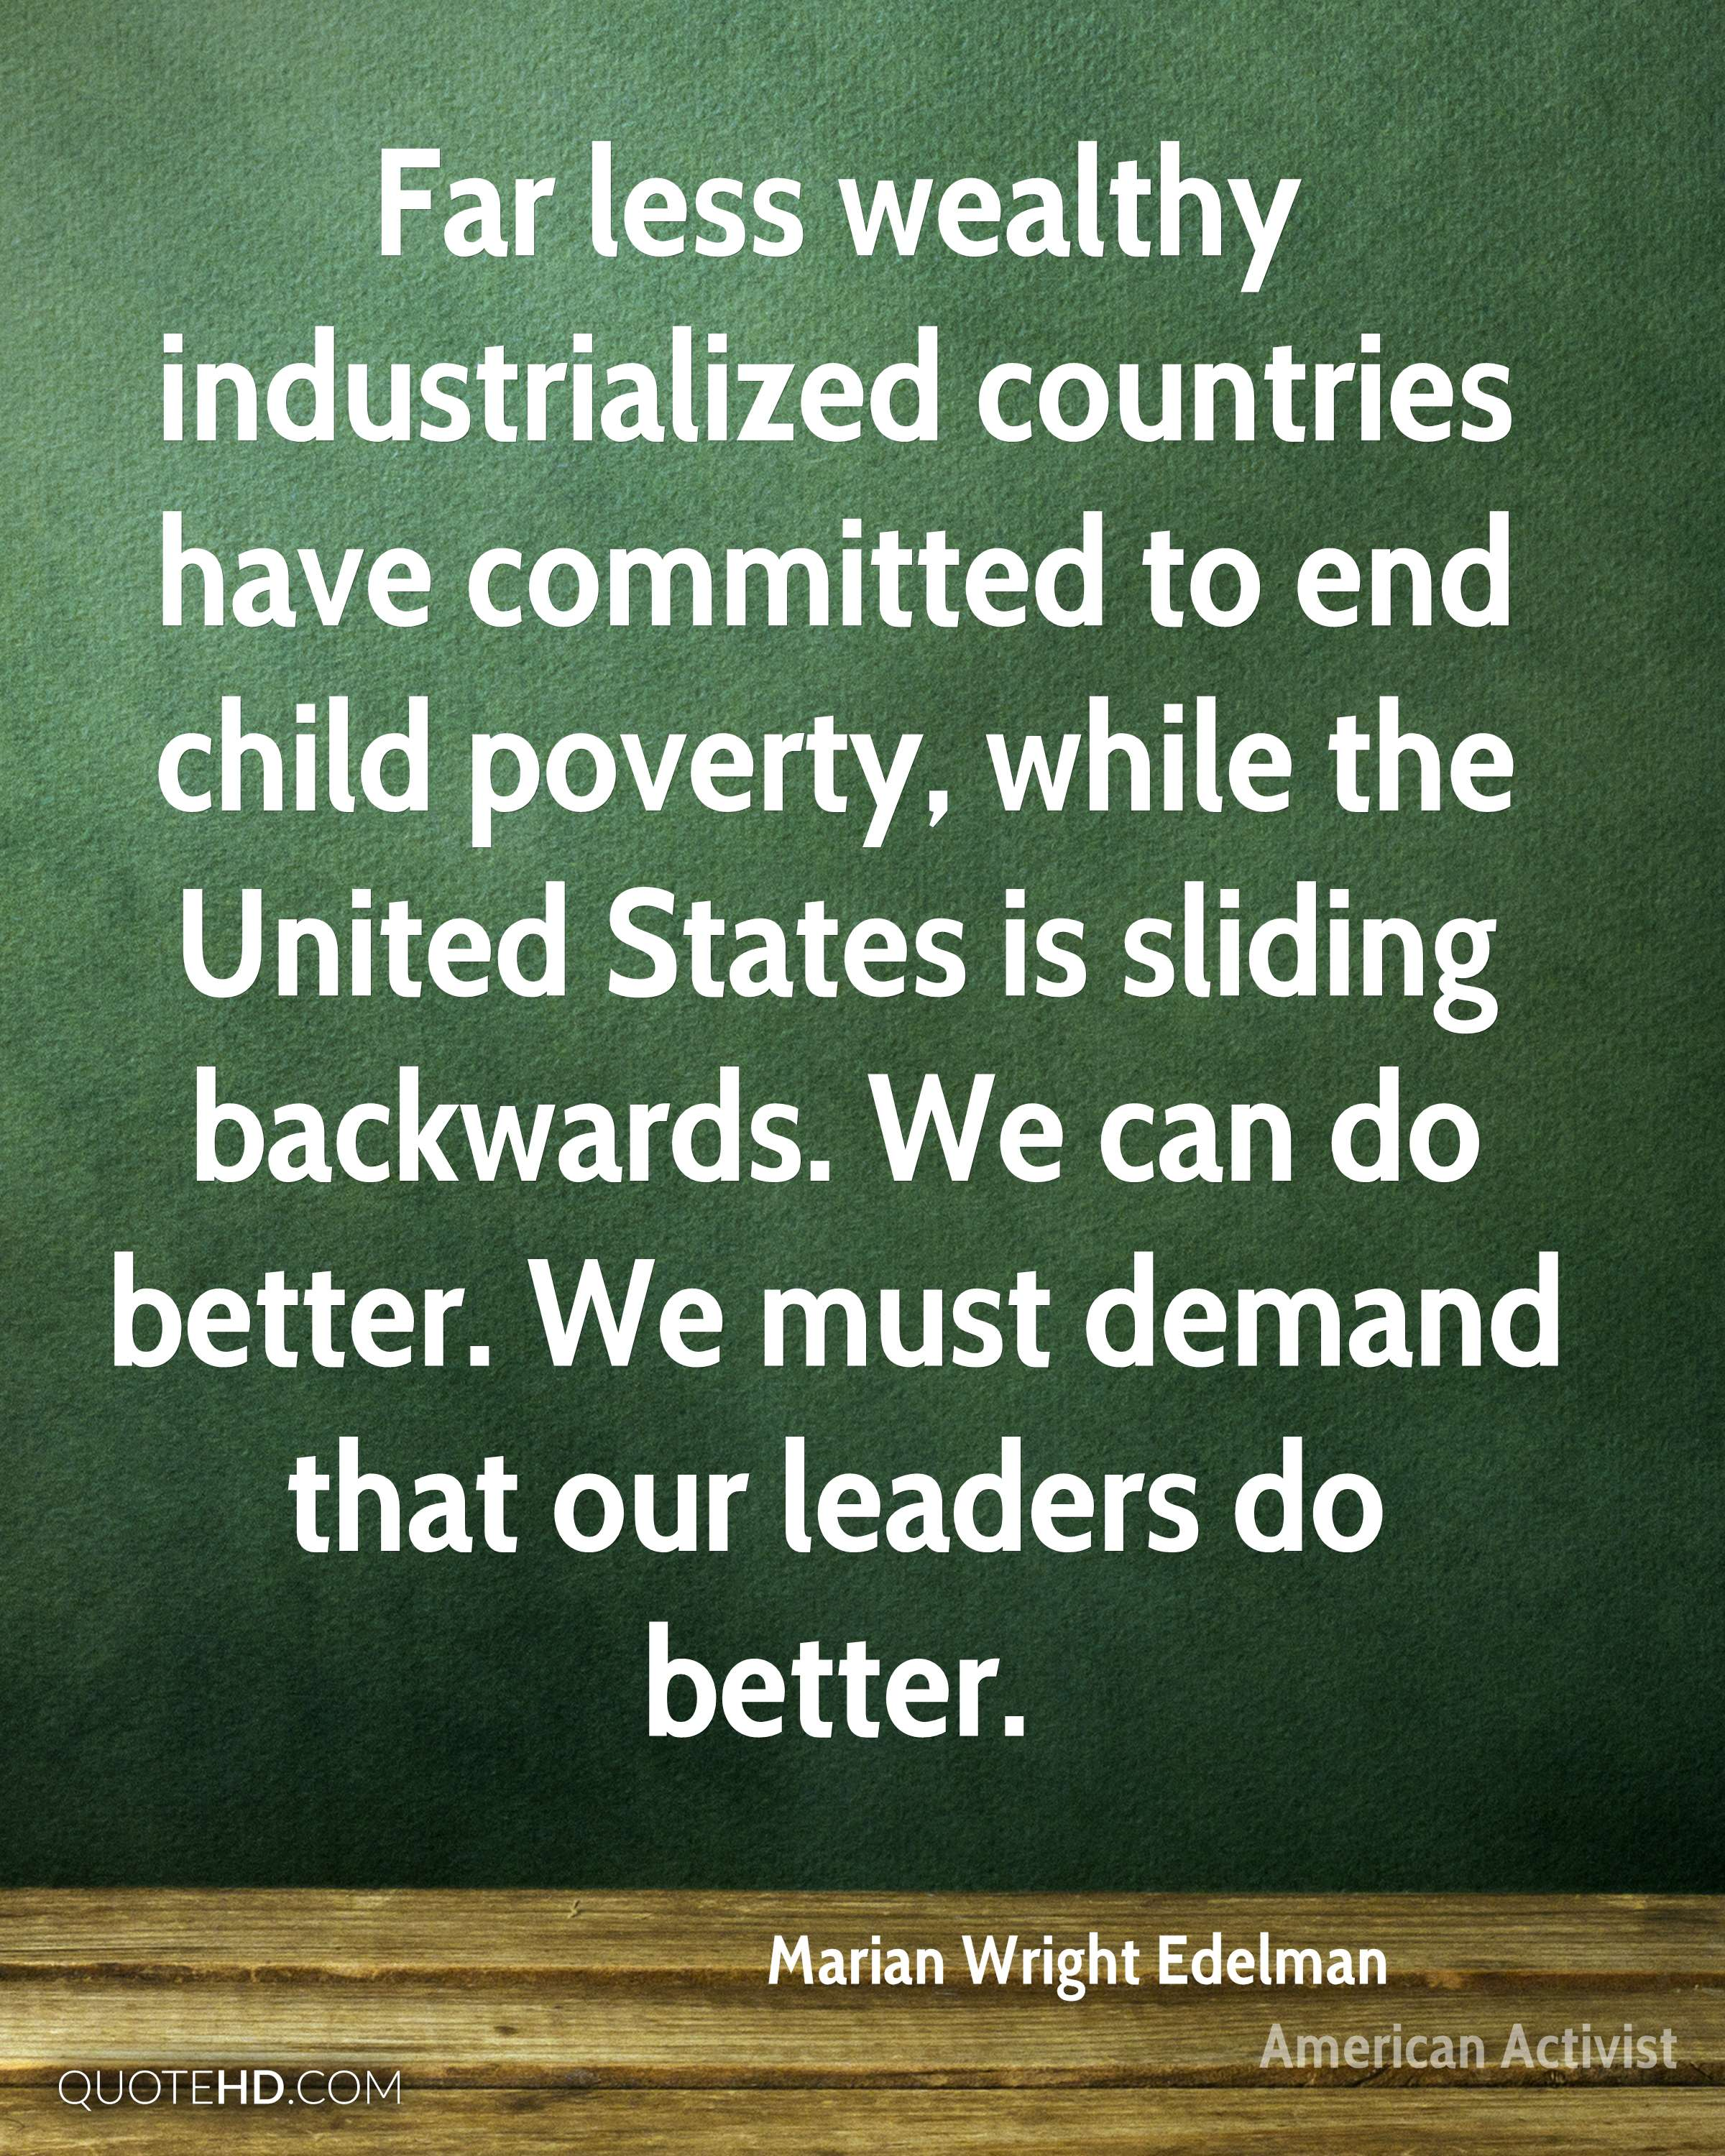 Far less wealthy industrialized countries have committed to end child poverty, while the United States is sliding backwards. We can do better. We must demand that our leaders do better.